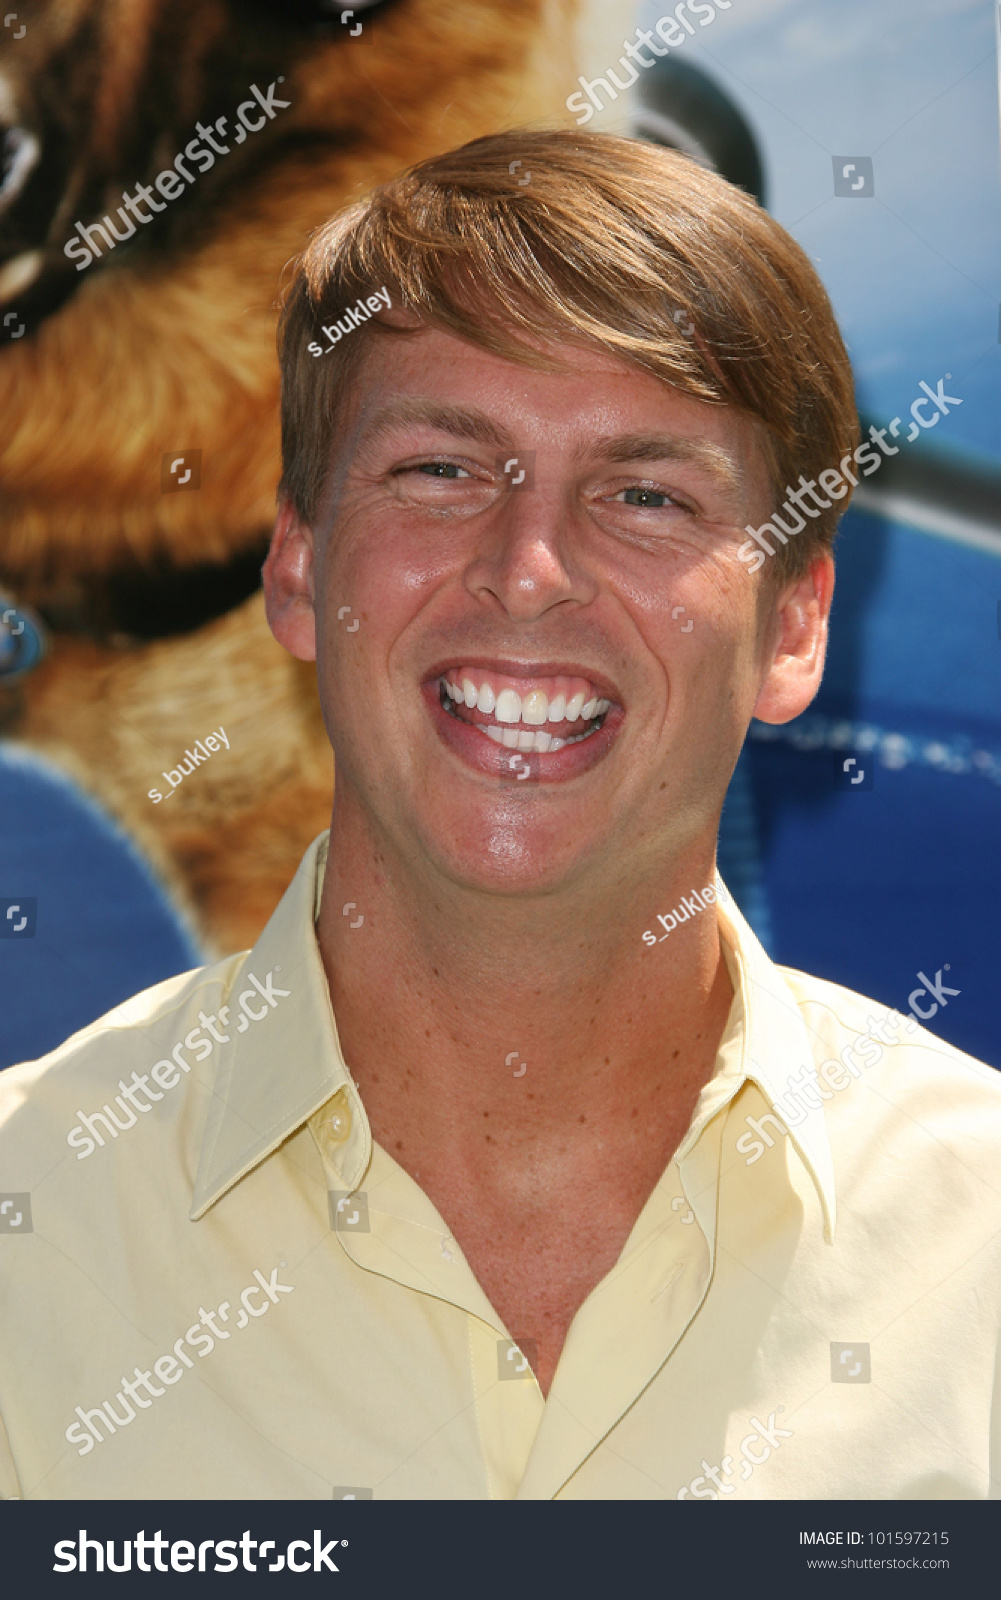 Jack mcbrayer at the cats and dogs the revenge of kitty for Jackson galaxy cat toys australia